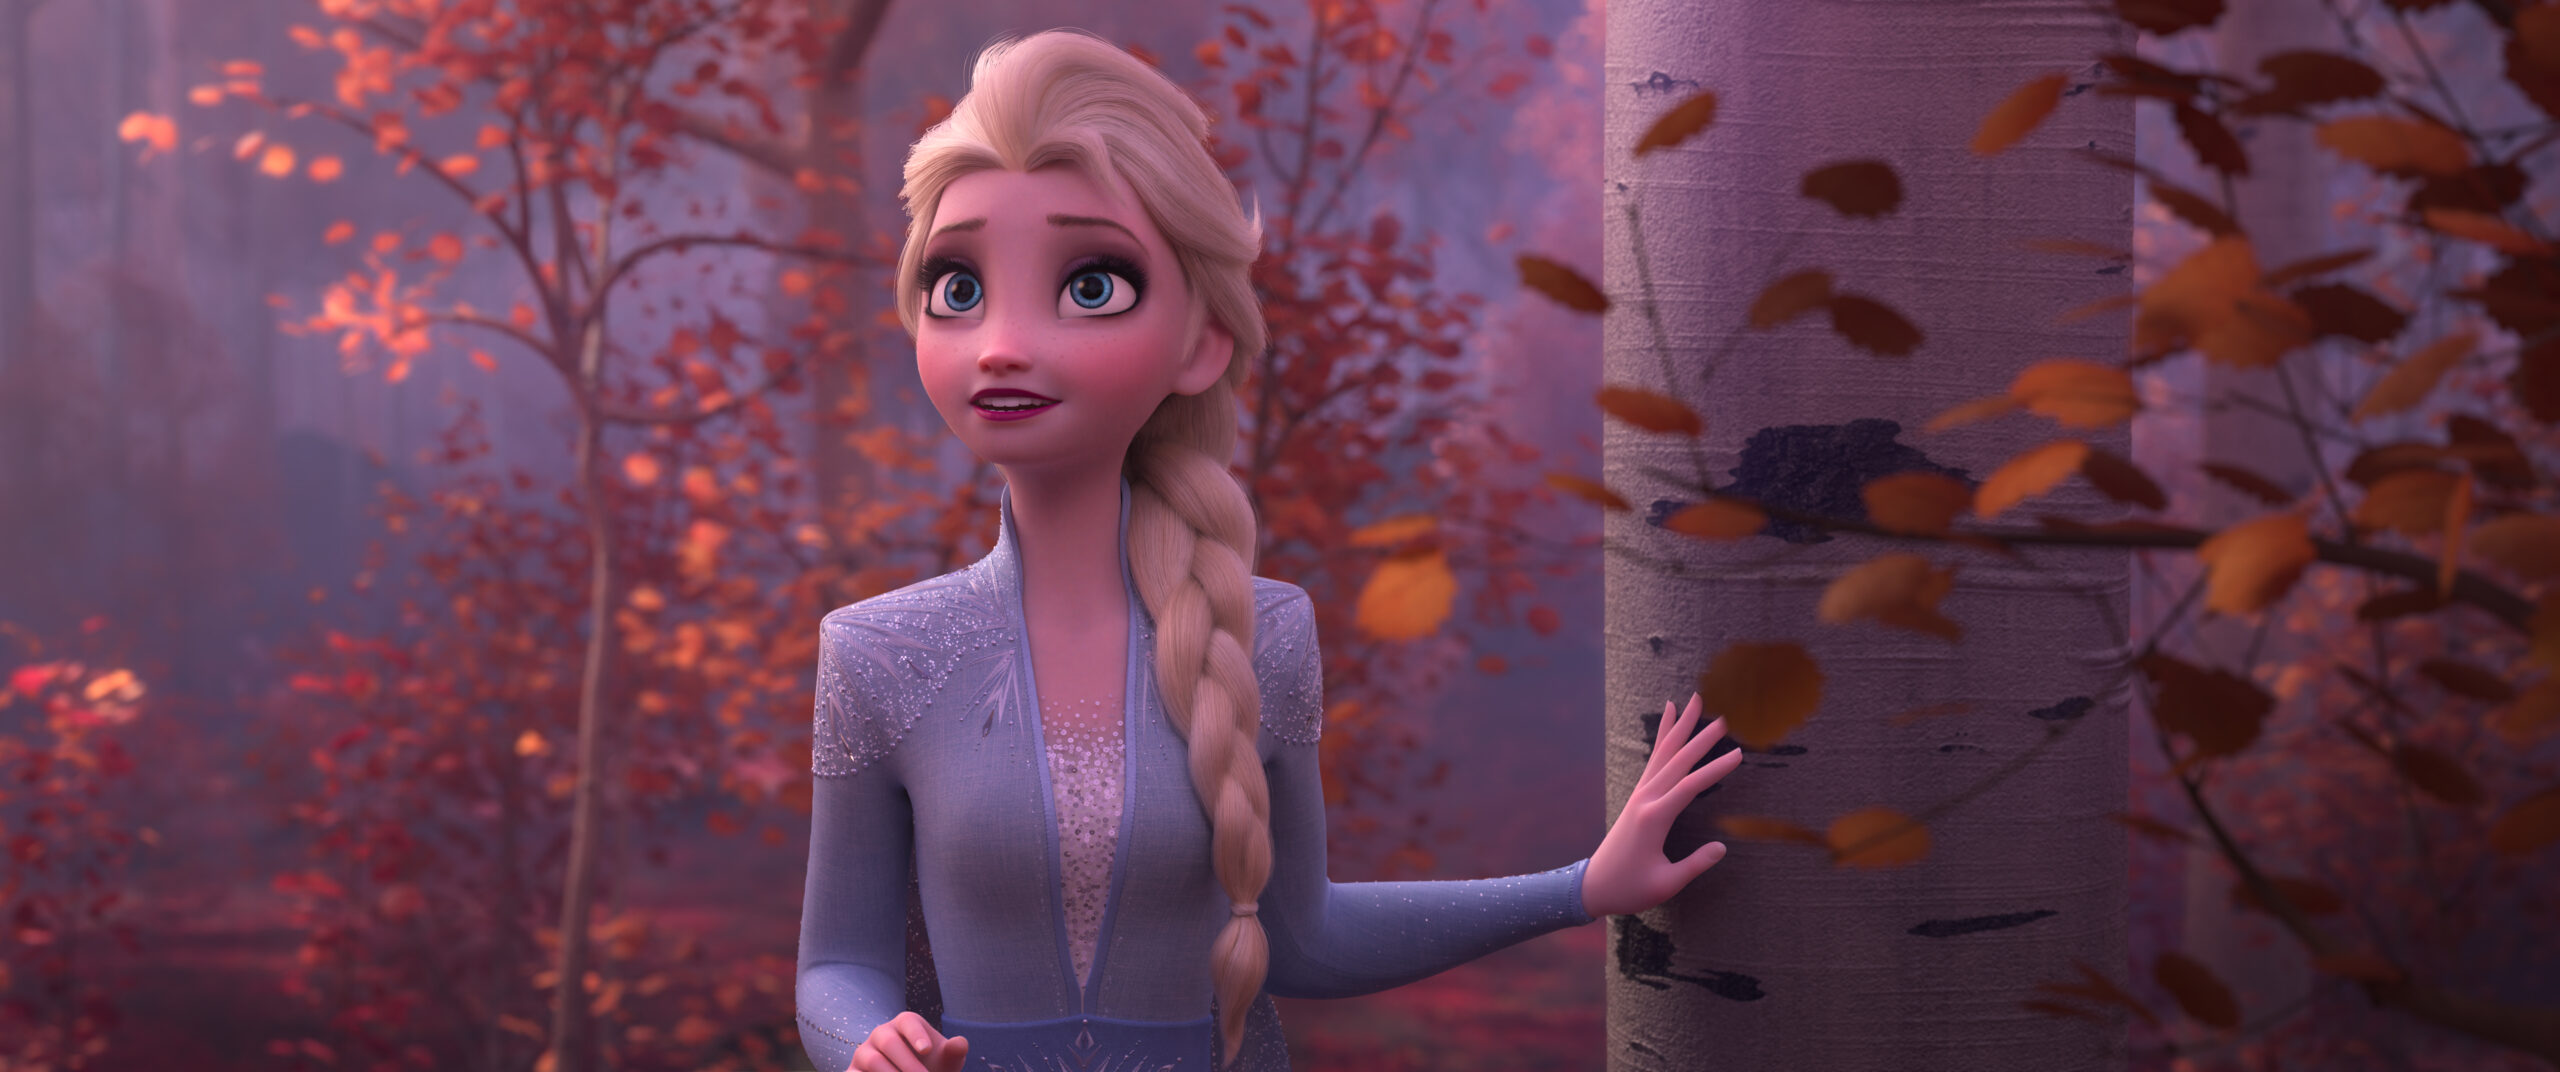 Frozen 2 Review: Is it too scary?!?